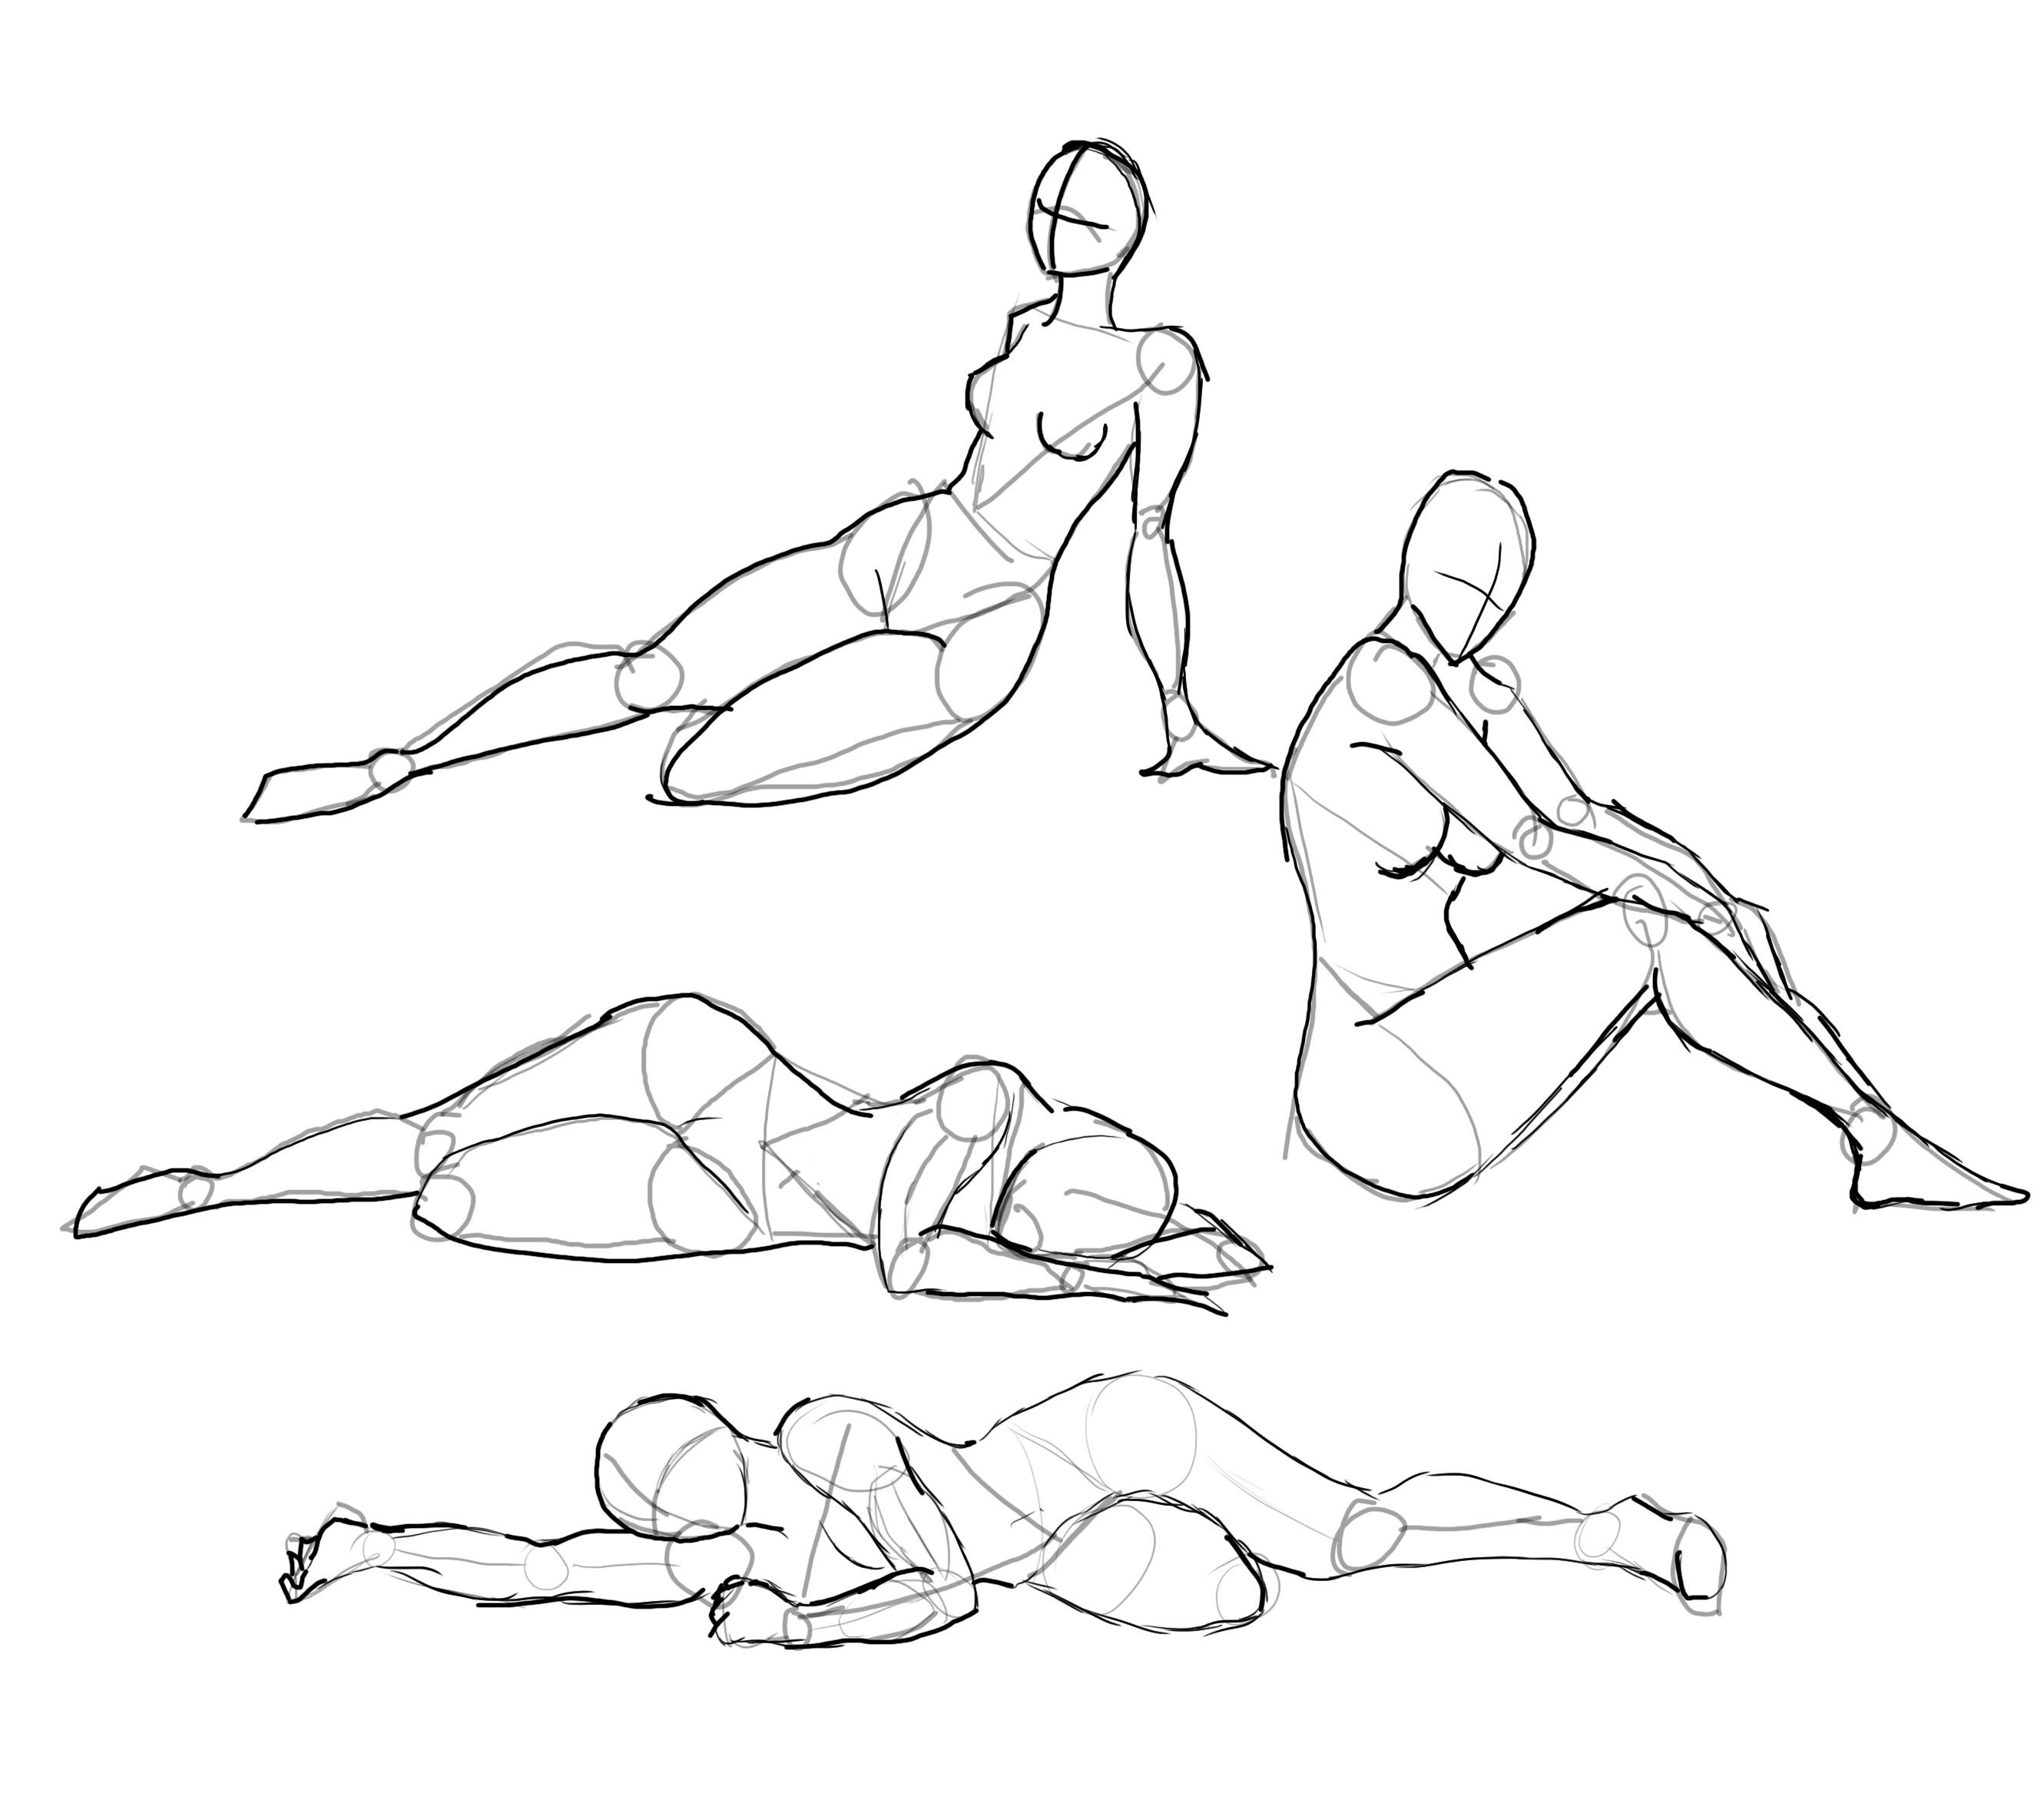 Dead Body Drawing At Getdrawings Free Download